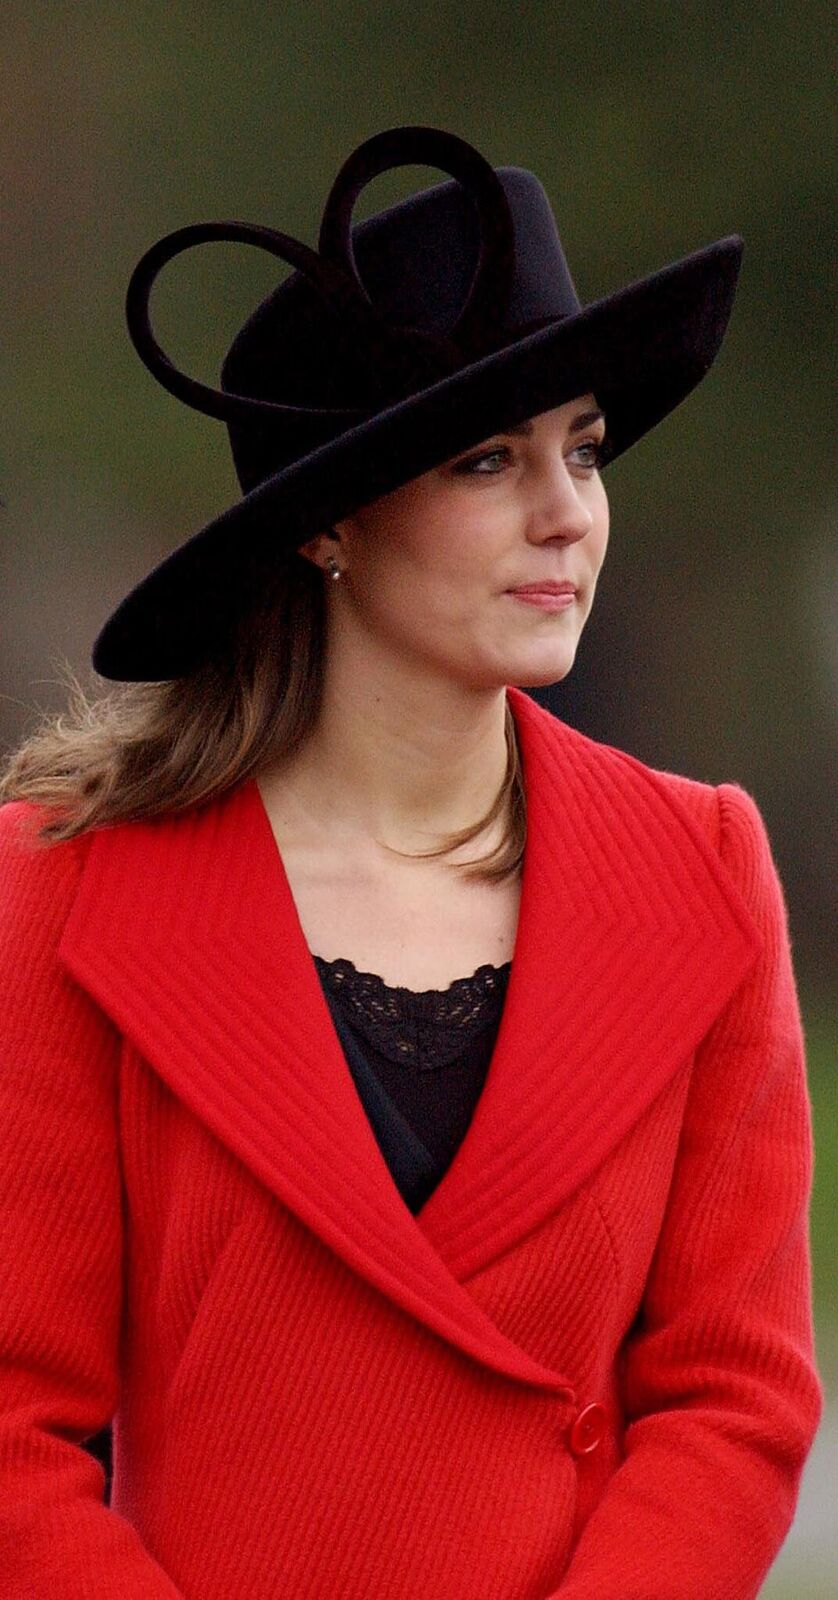 Kate Middleton, la petite amie du prince Williams, assiste au défilé du souverain à la Royal Military Academy de Sandhurst le 15 décembre 2006 à Sandhurst, en Angleterre | Source: Getty Images